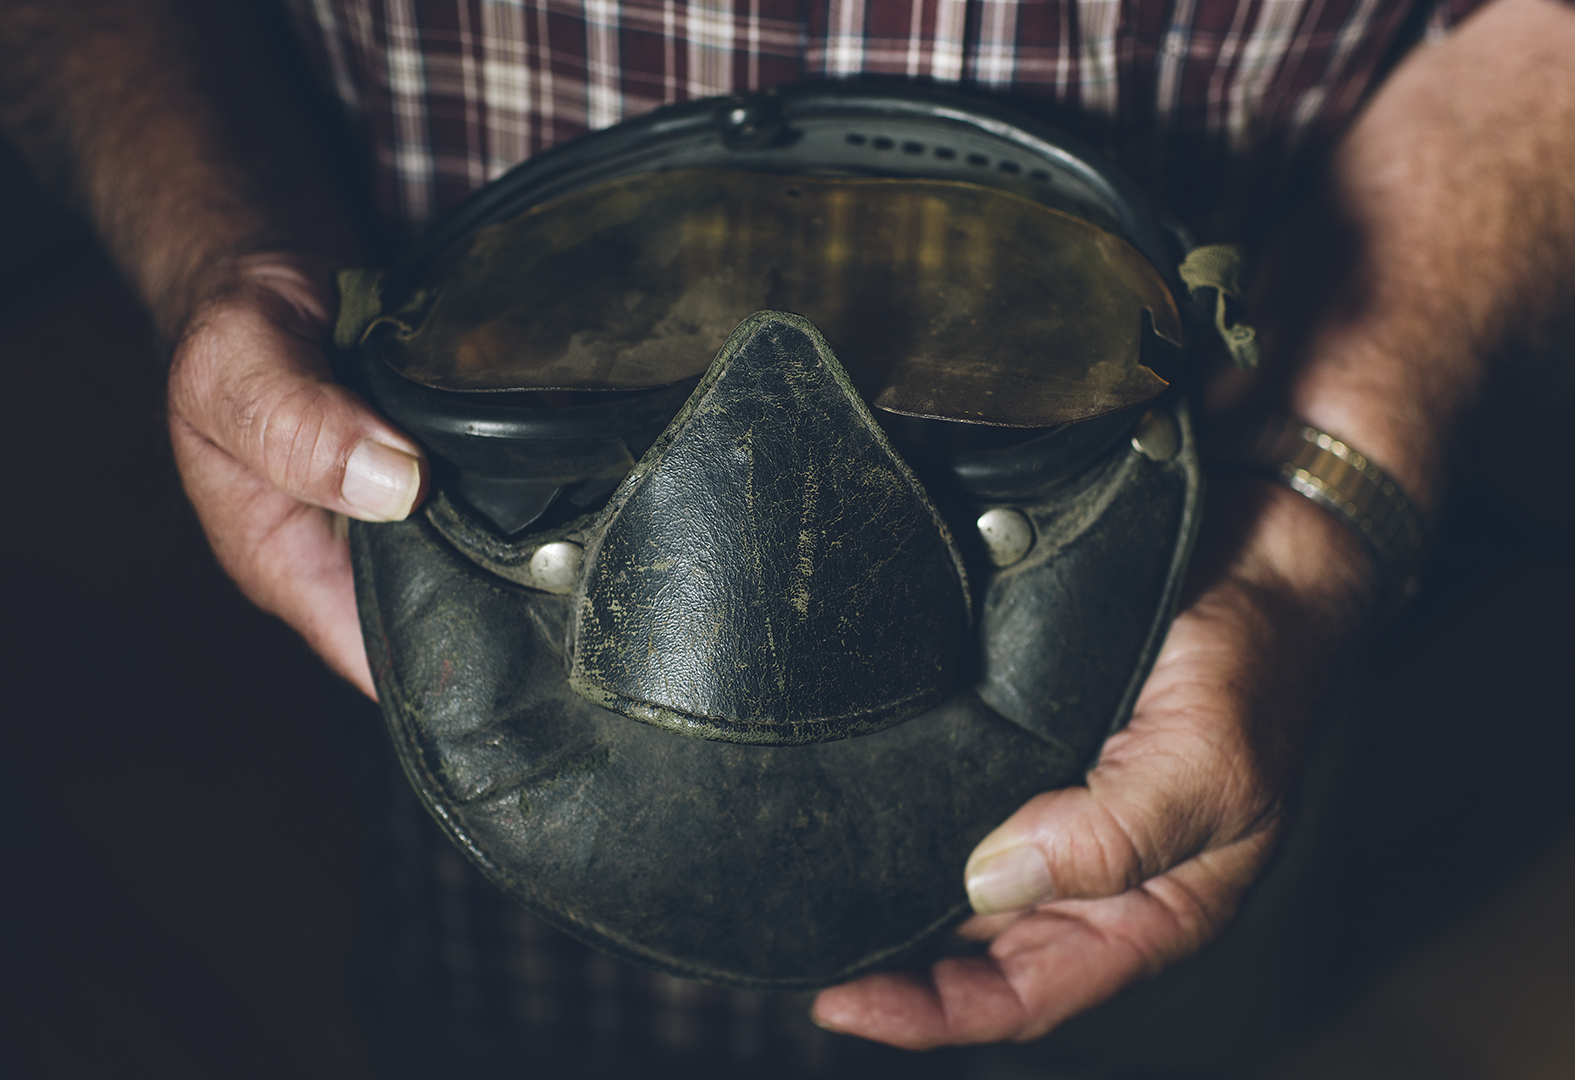 Long before full-face helmets: Johnny holds his leather face mask. It was common for drivers to wear one for protection from flying debris.